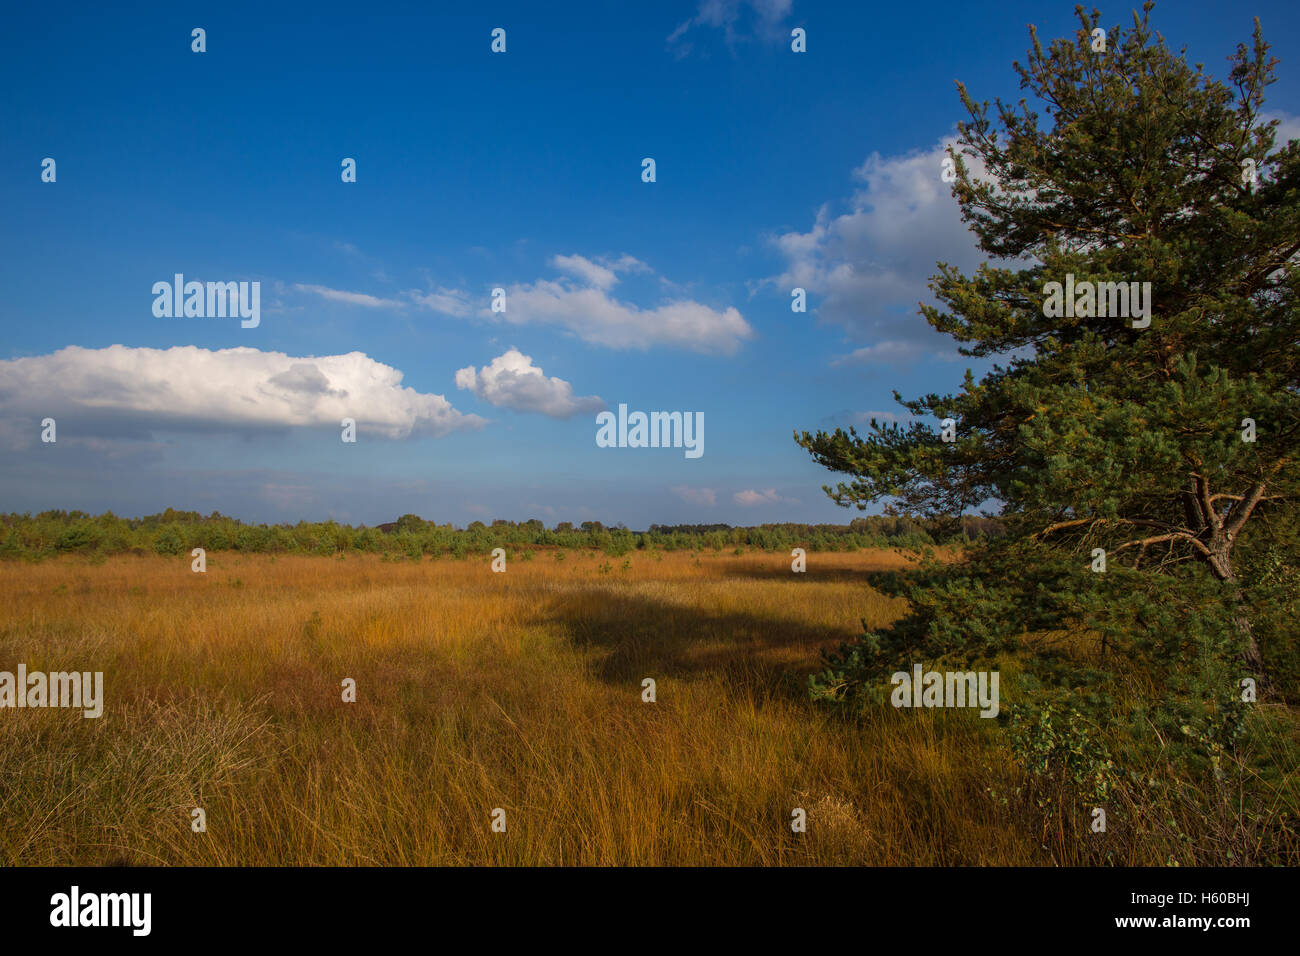 Marshland with conifer and blue sky with beautiful cumulus clouds in autumn season at afternoon - Stock Image